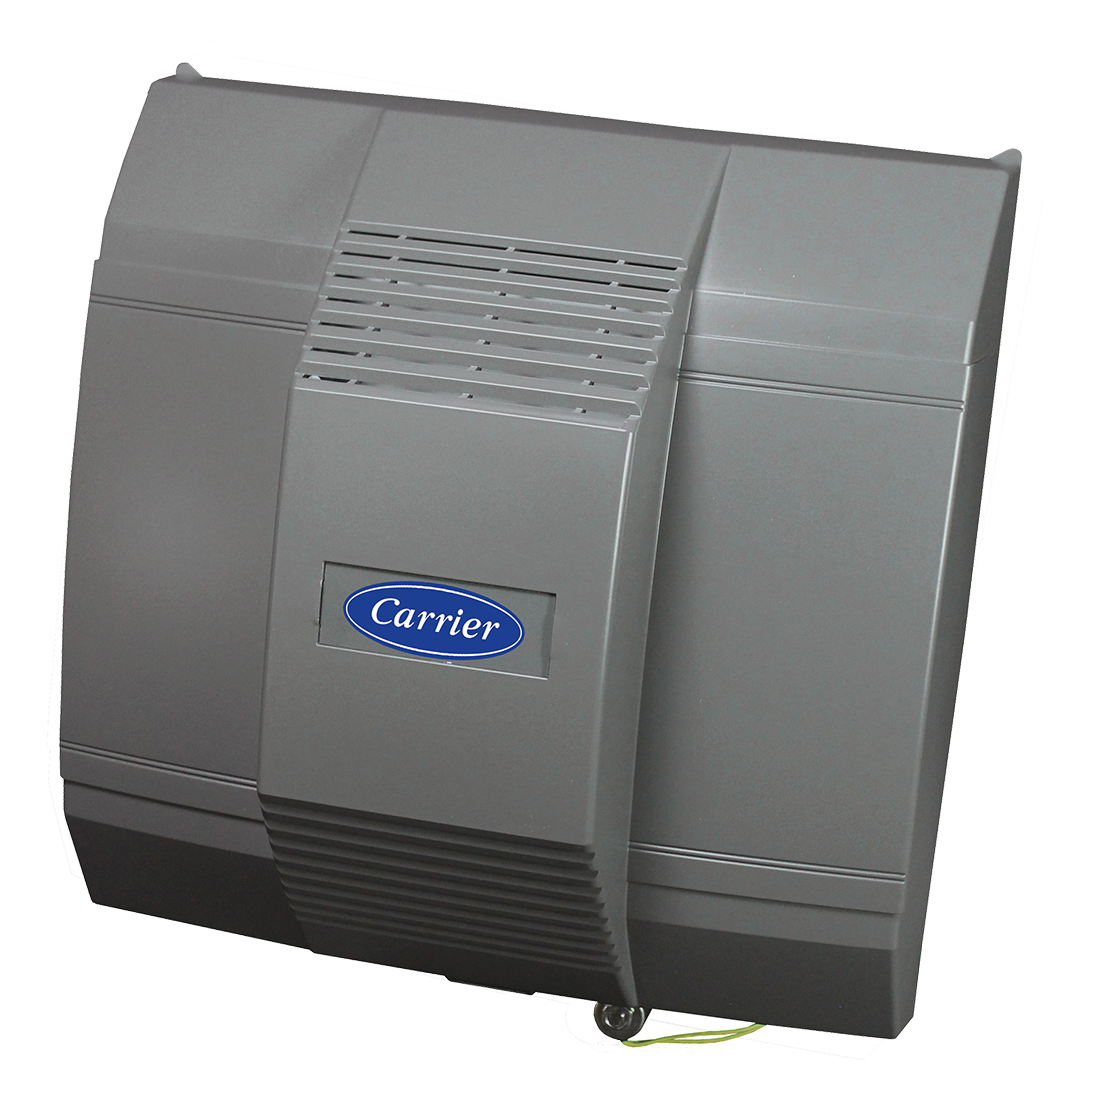 Carrier Large Bypass Humidifier